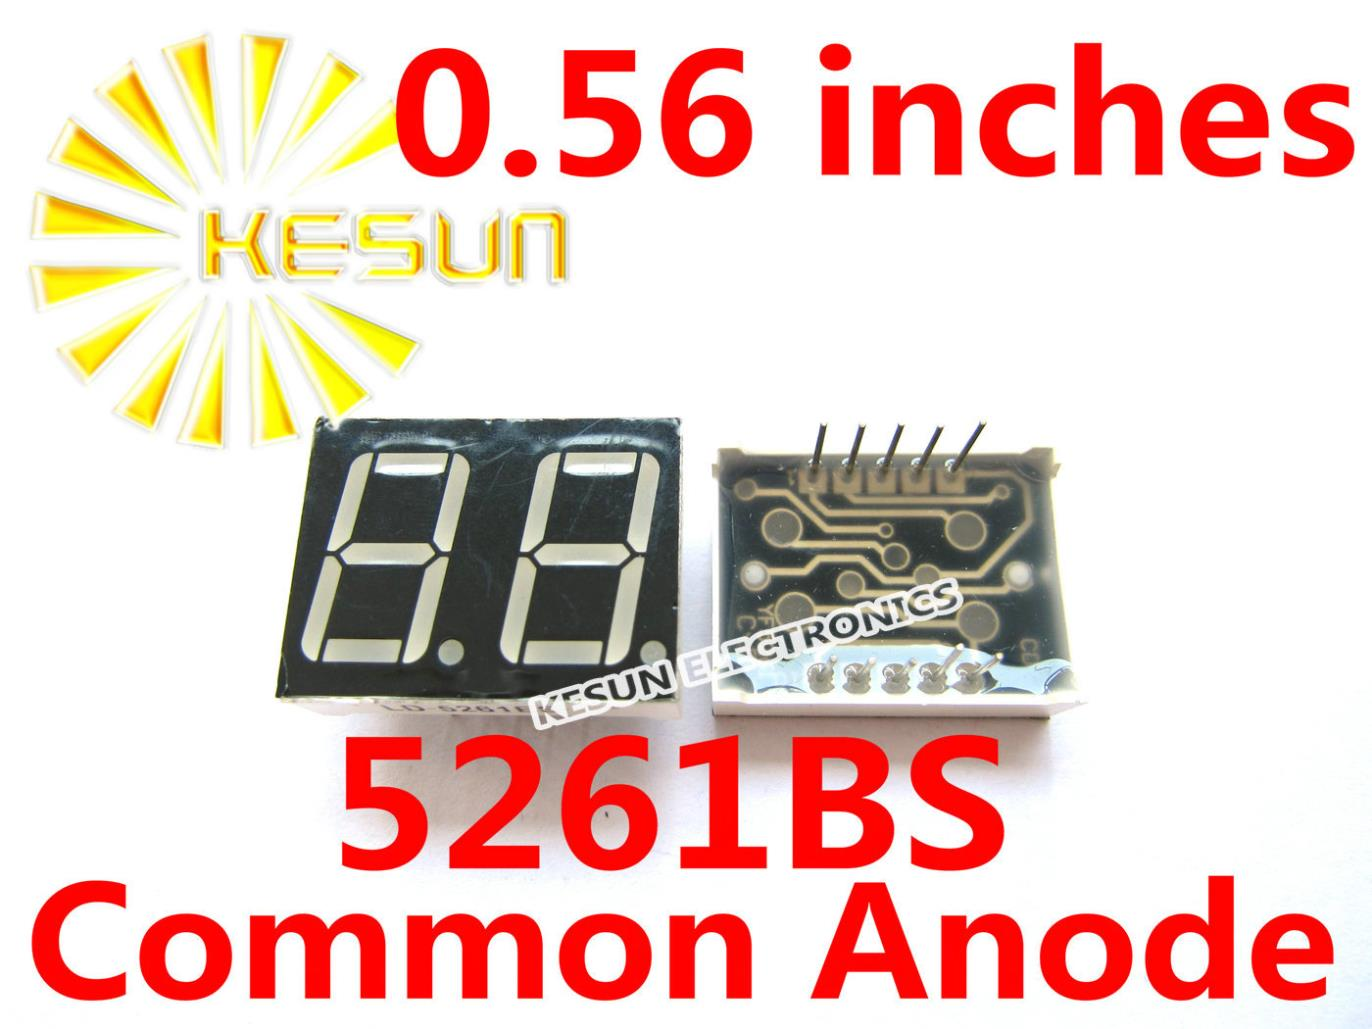 Optoelectronic Displays Electronic Components & Supplies 100pcs X 0.56 Inches Red Blue Jade Green 2 Digital Tube 5261bs 5261as 5261ab 5261bb 5261agg 5261bgg Led Display Module Promote The Production Of Body Fluid And Saliva